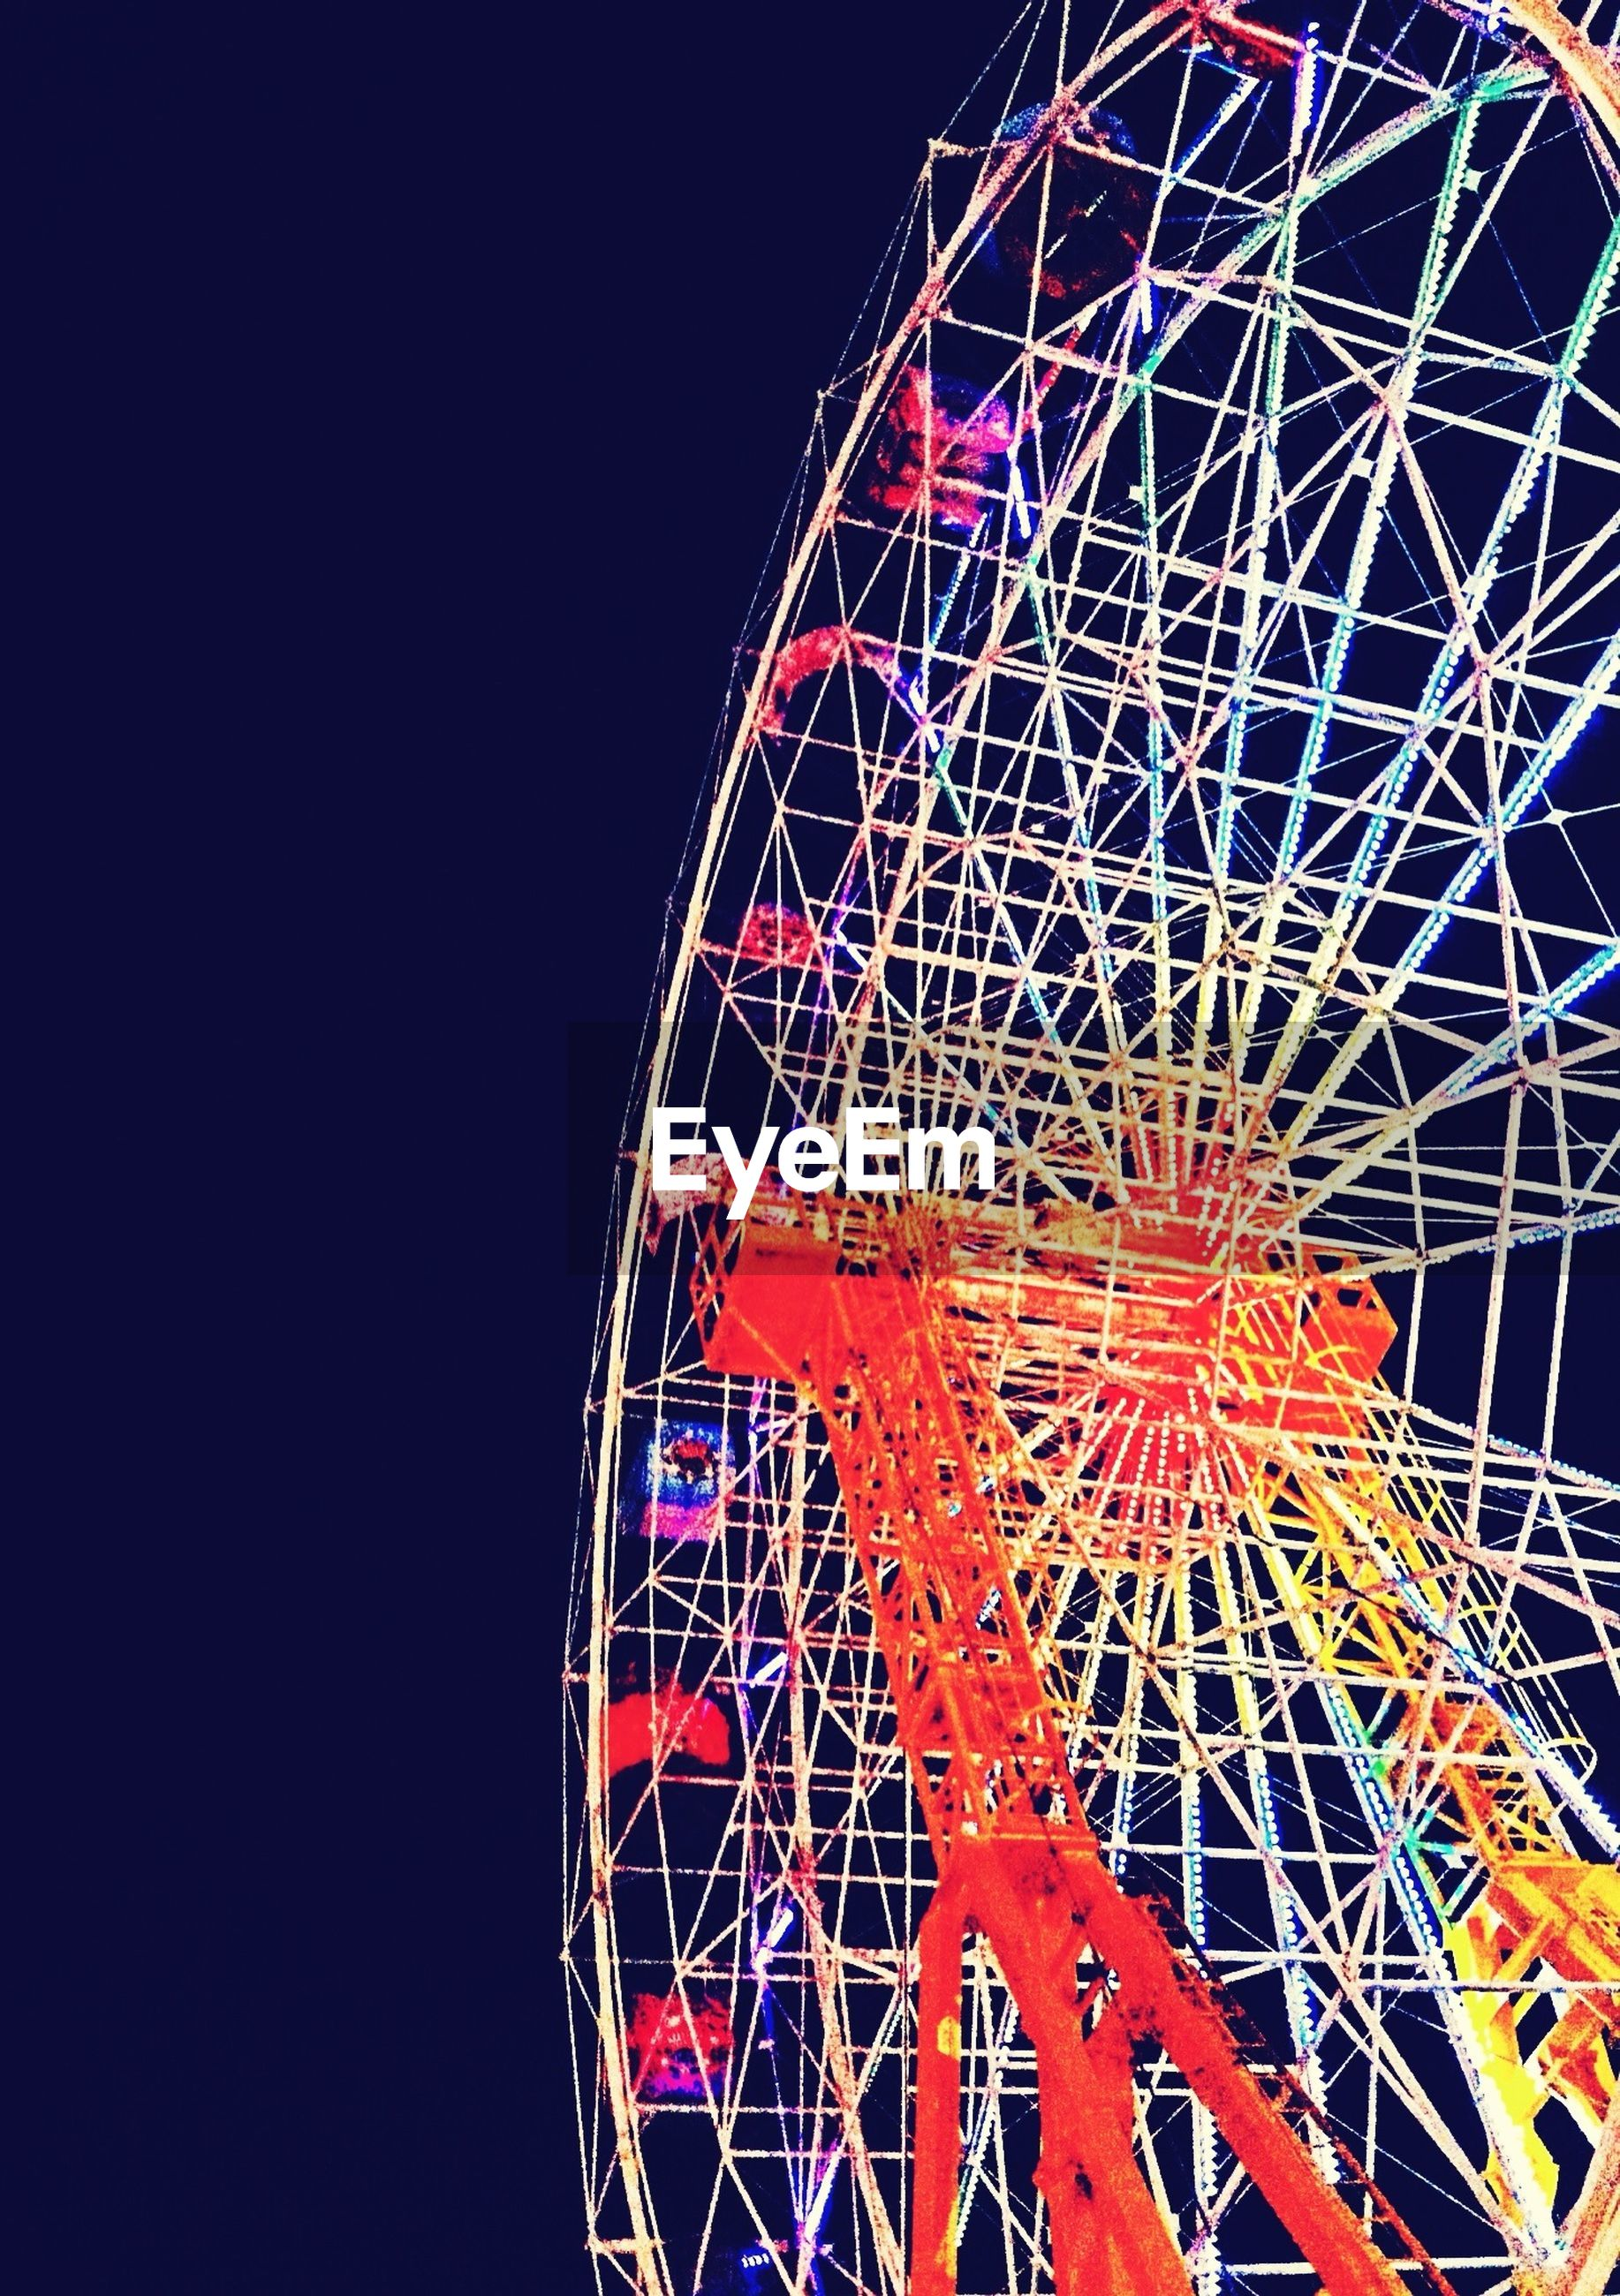 amusement park, amusement park ride, ferris wheel, arts culture and entertainment, low angle view, illuminated, night, clear sky, metal, fun, sky, blue, built structure, copy space, traveling carnival, multi colored, outdoors, no people, circle, enjoyment